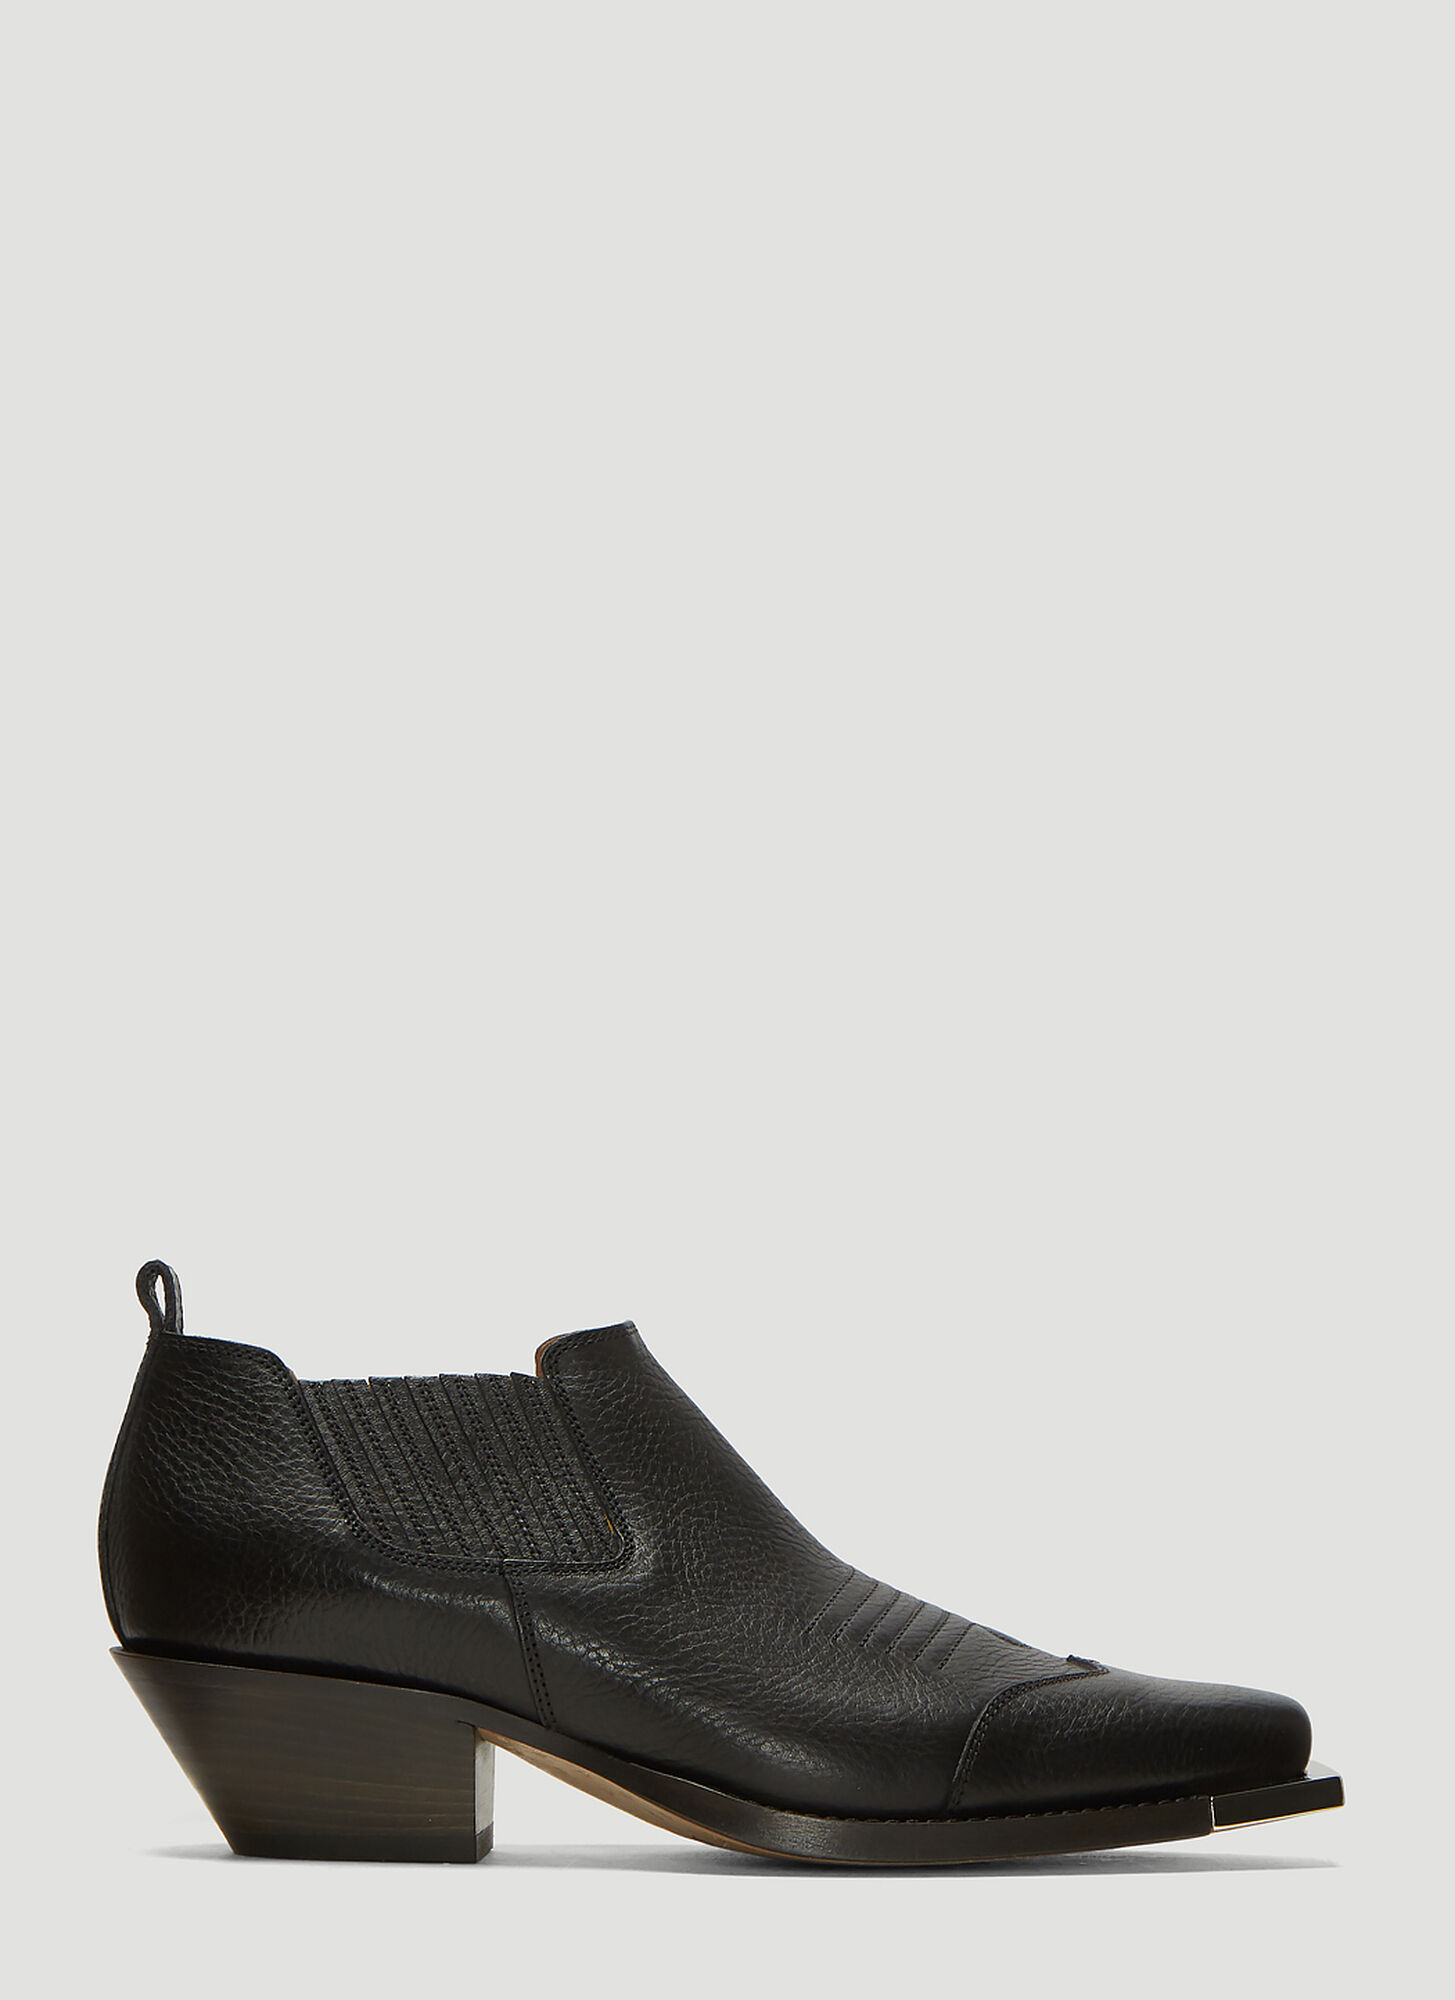 Off-White Cowboy Ankle Boots in Black